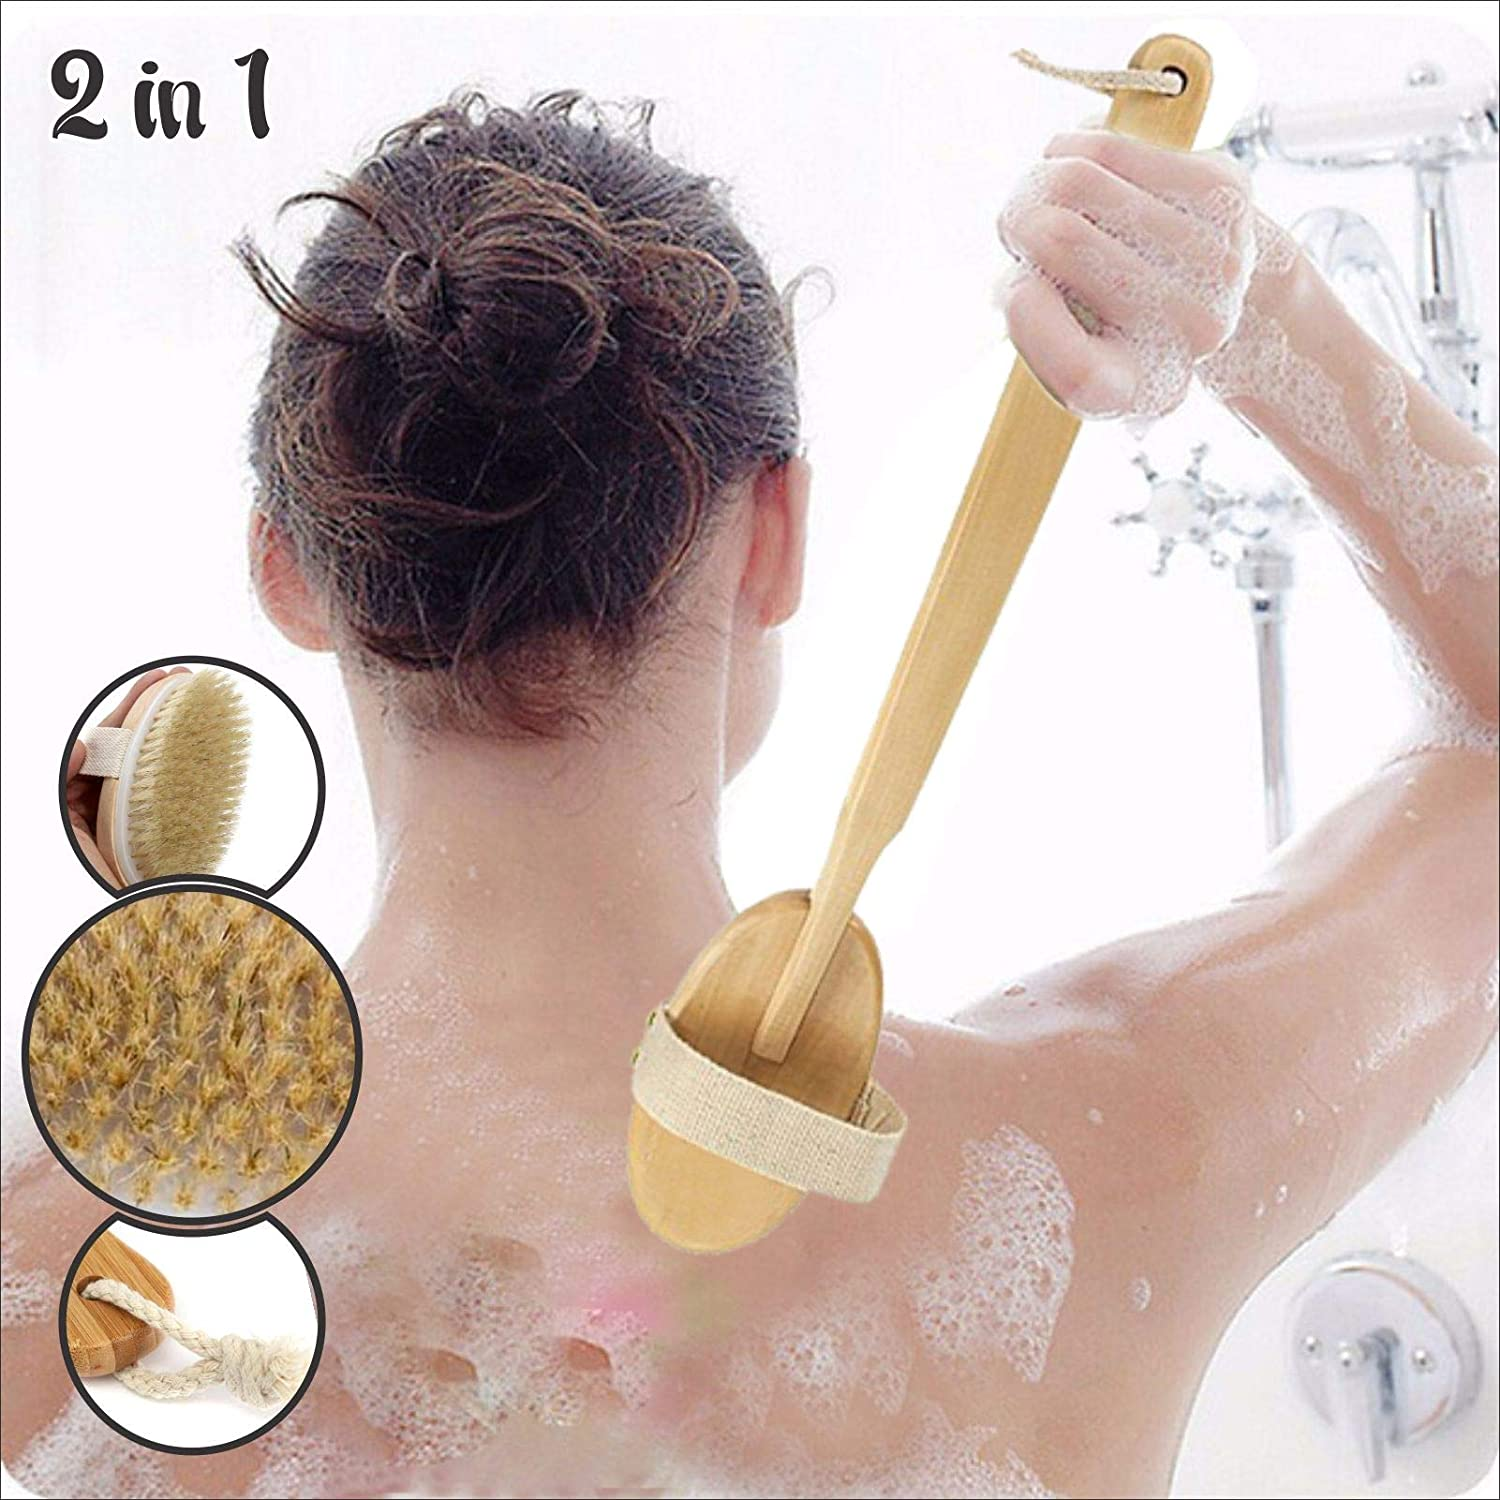 Back Scrubber, Detachable Body Brush Wooden Handle Bristle Back Shower Brush for Back Exfoliator, Cellulite Reduction and Massaging Kungfu Mall